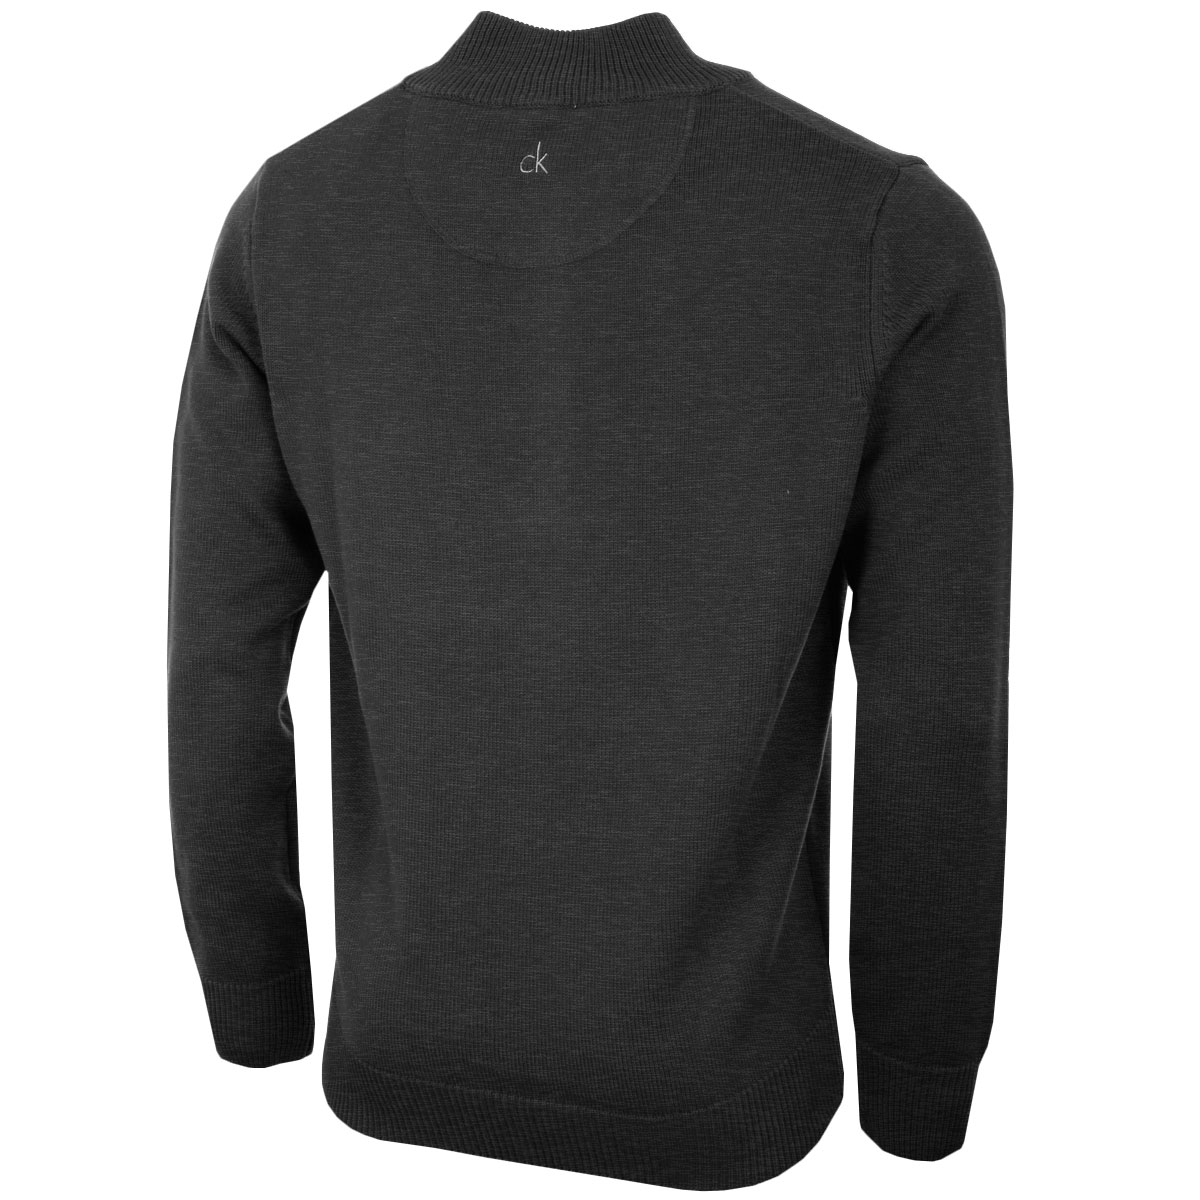 Calvin-Klein-Golf-Mens-2019-Chunky-Cotton-1-2-Zip-Golf-Top-Sweater-28-OFF-RRP thumbnail 3